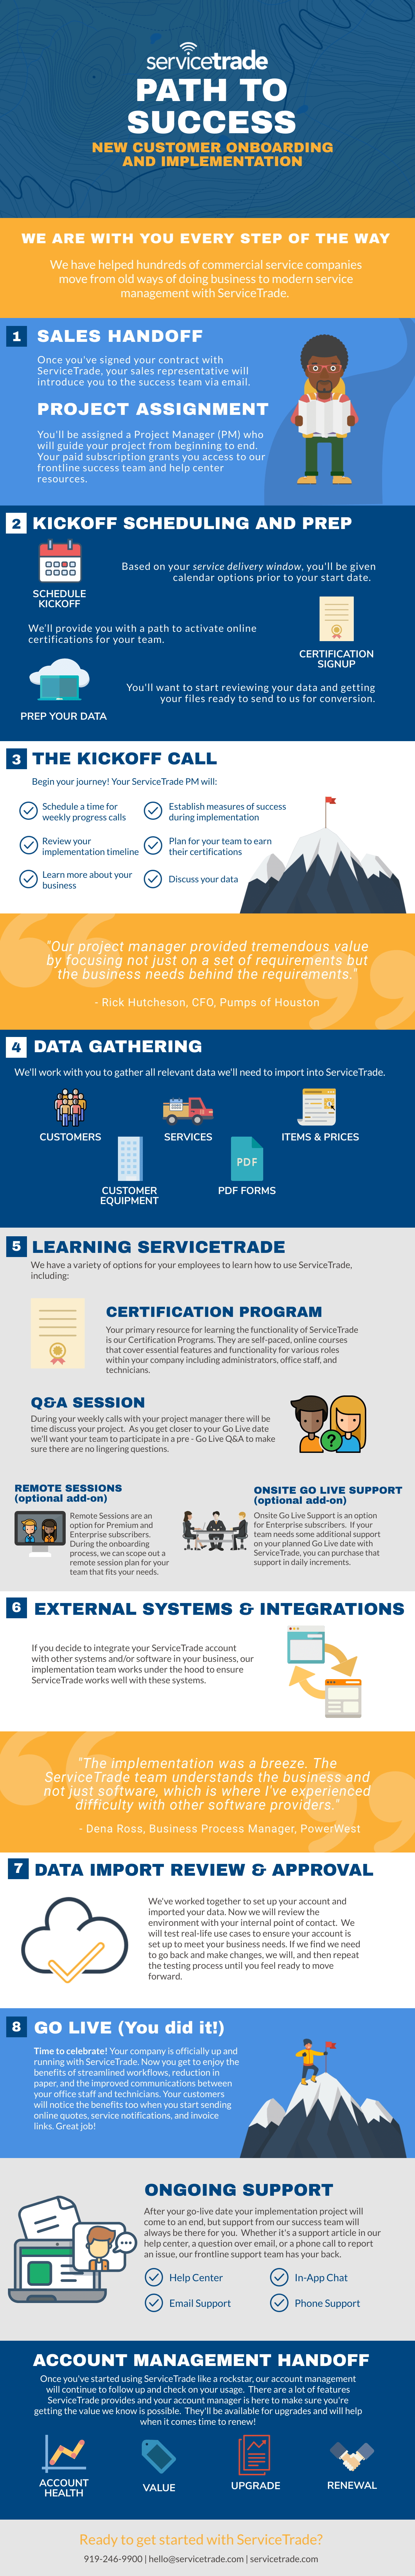 ServiceTrade Implementation and Onboarding Infographic